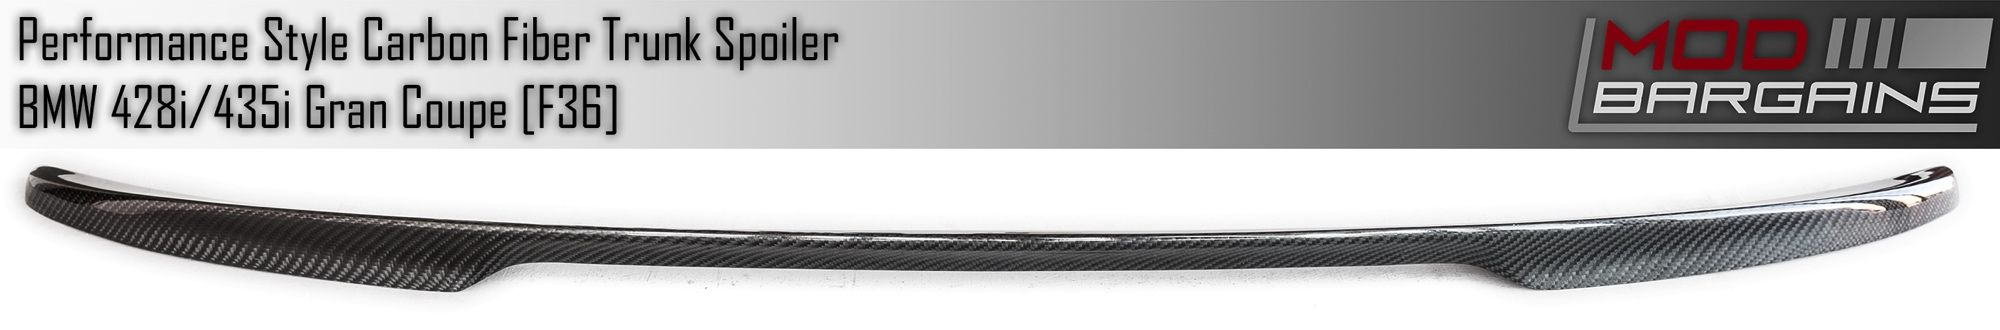 Front View Performance Style Carbon Fiber Trunk Spoiler BMTS3601